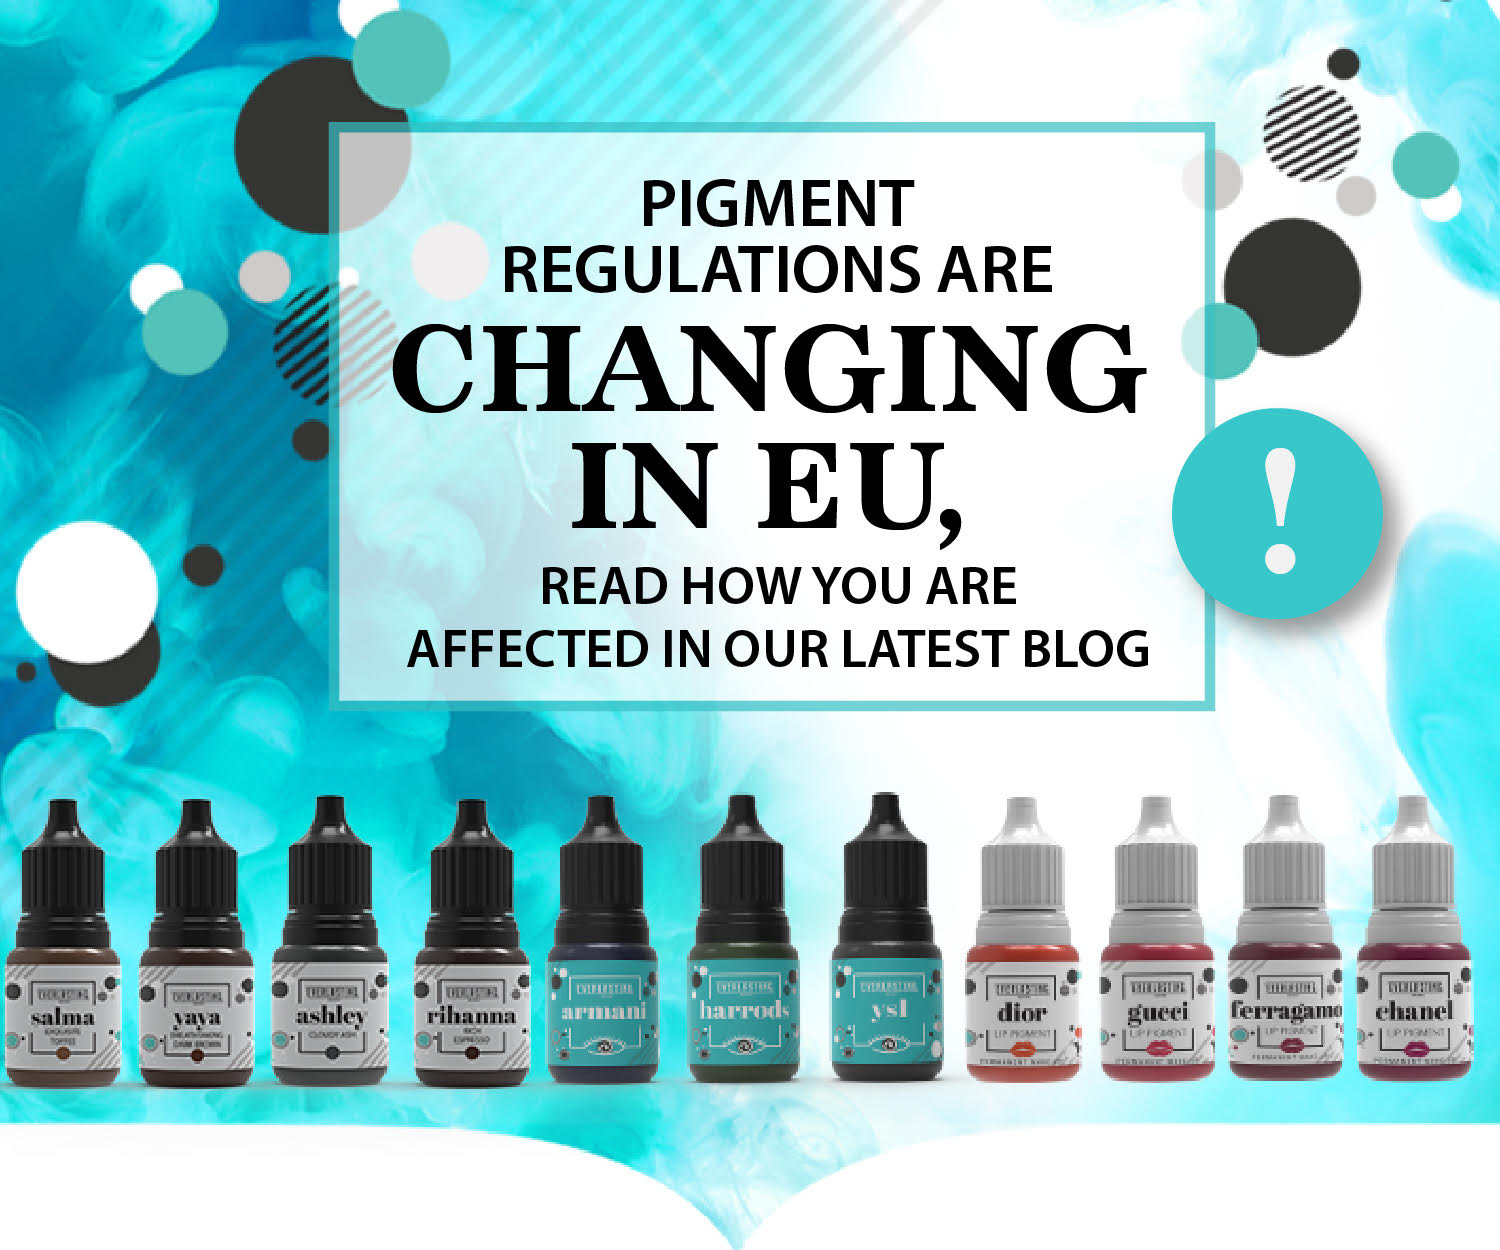 Pigment EU regulations are changing and YOU ARE AFFECTED